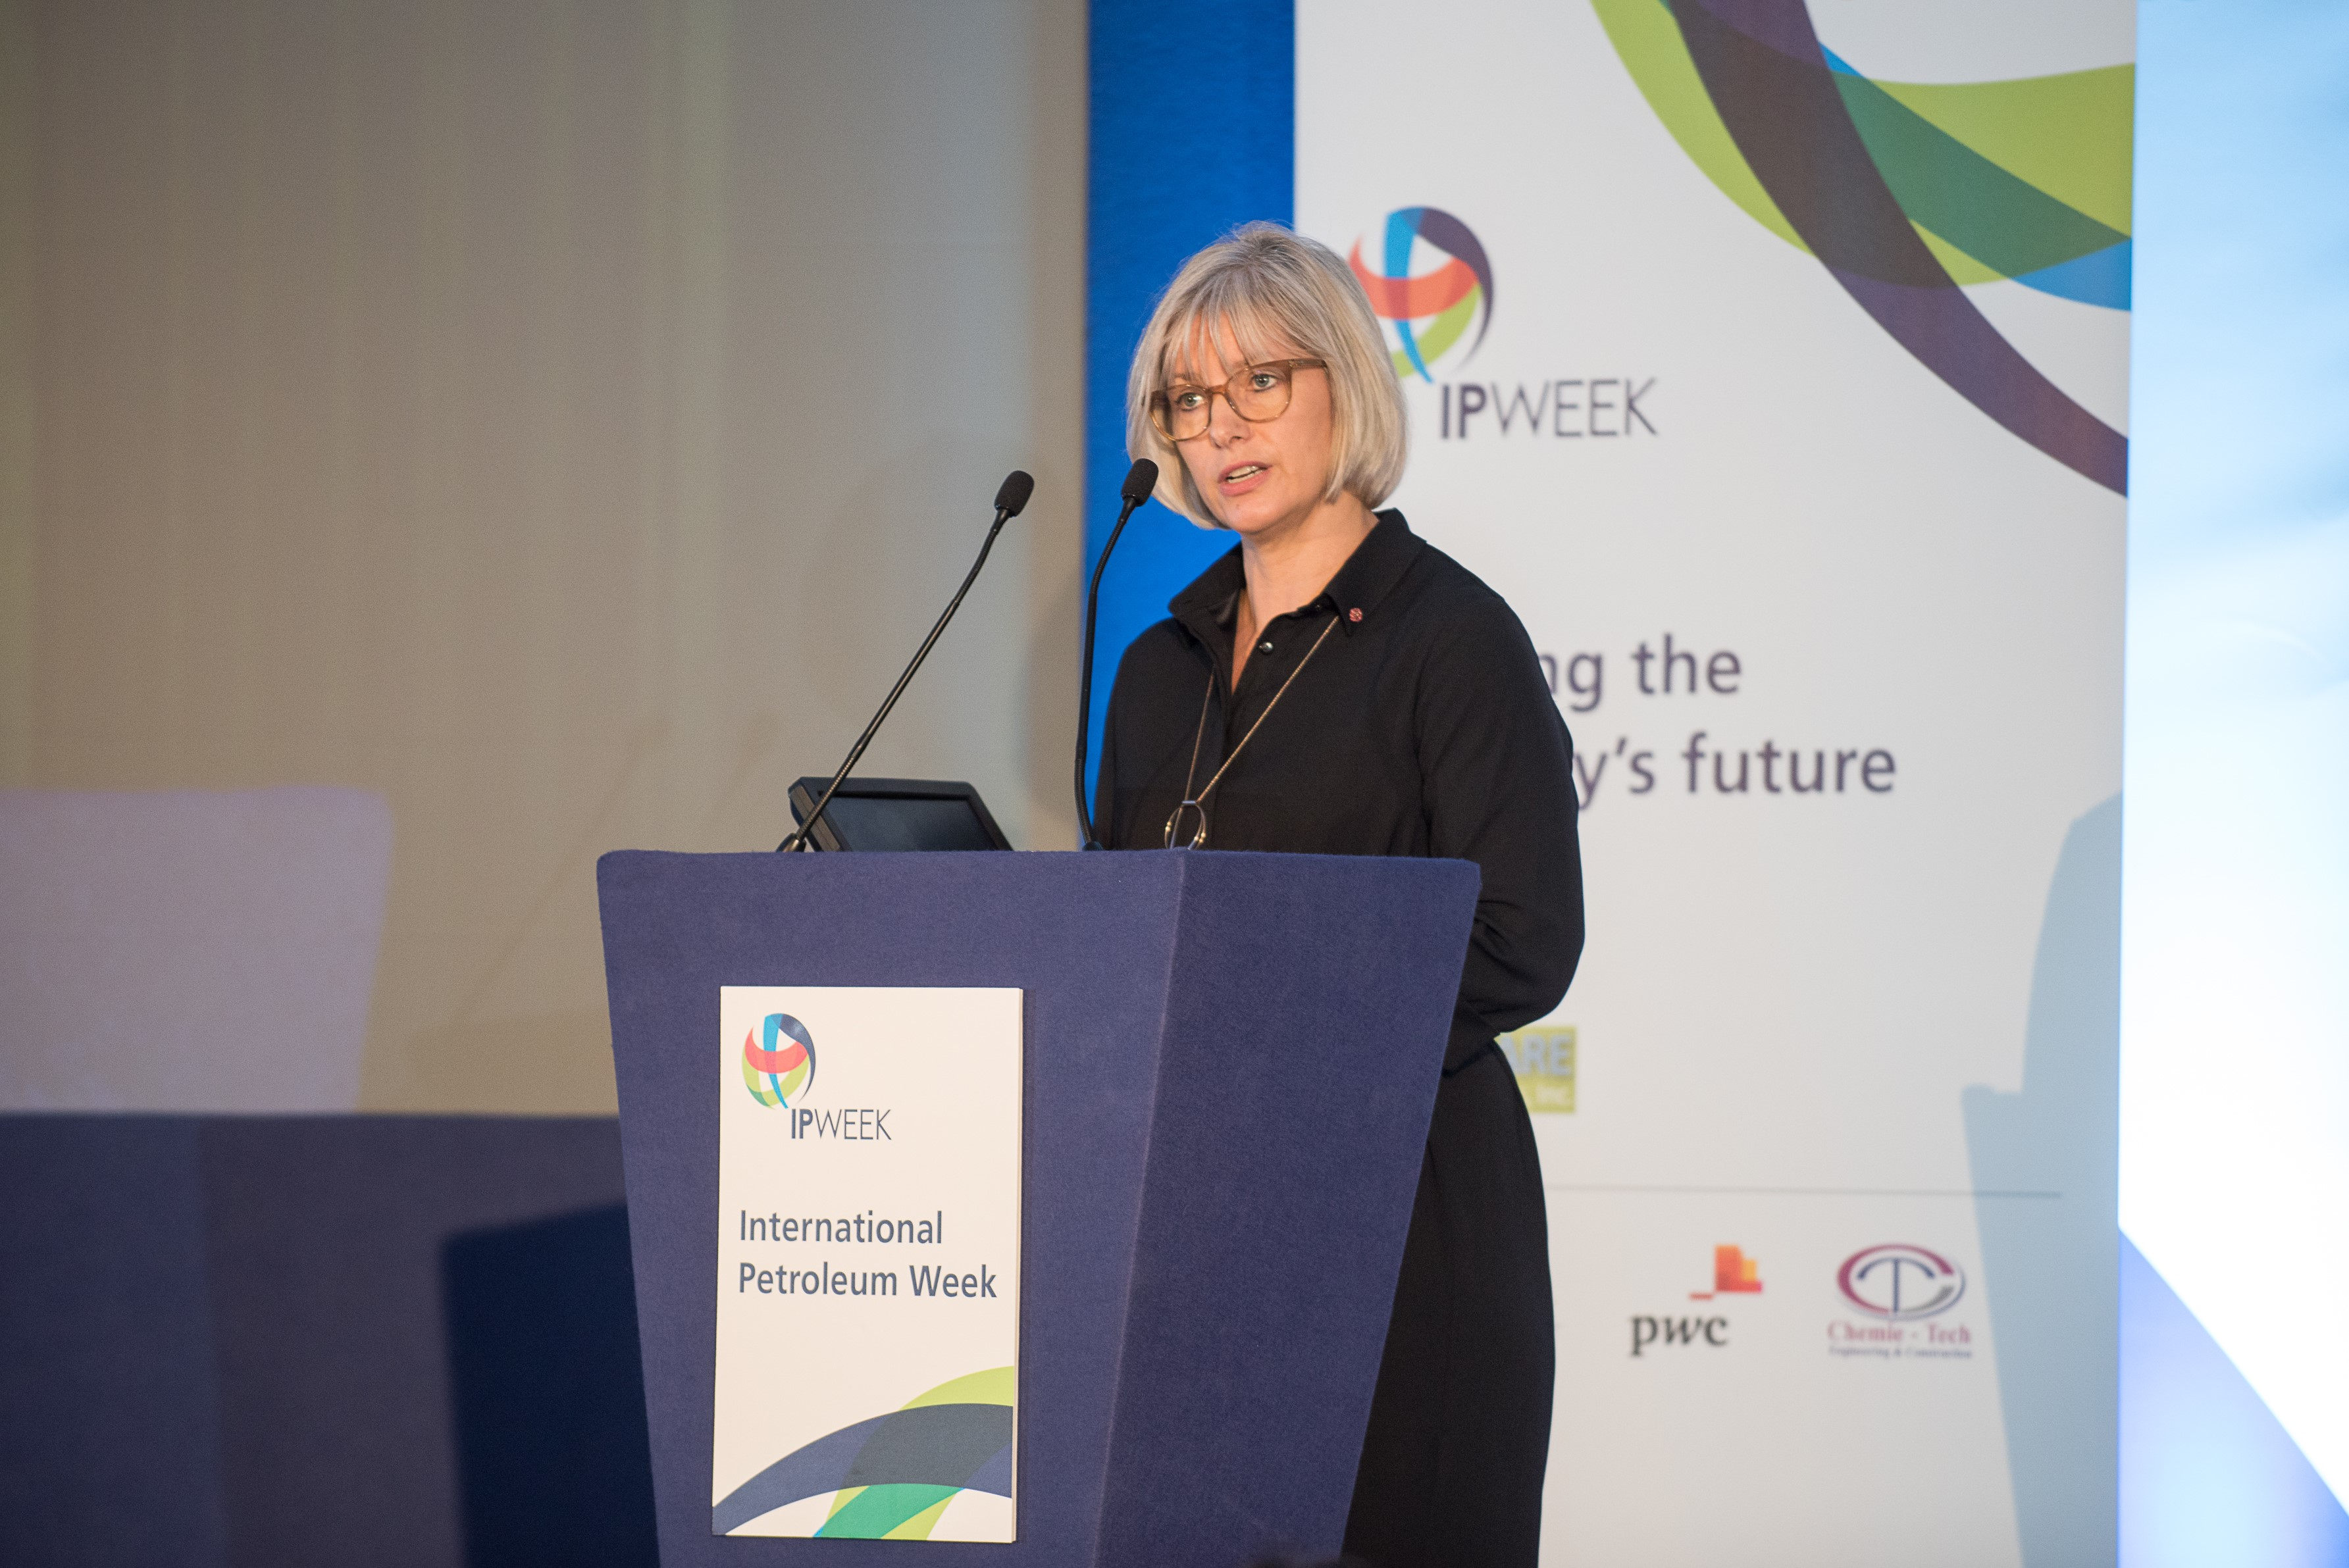 Louise Kingham, chief executive of the Energy Institute